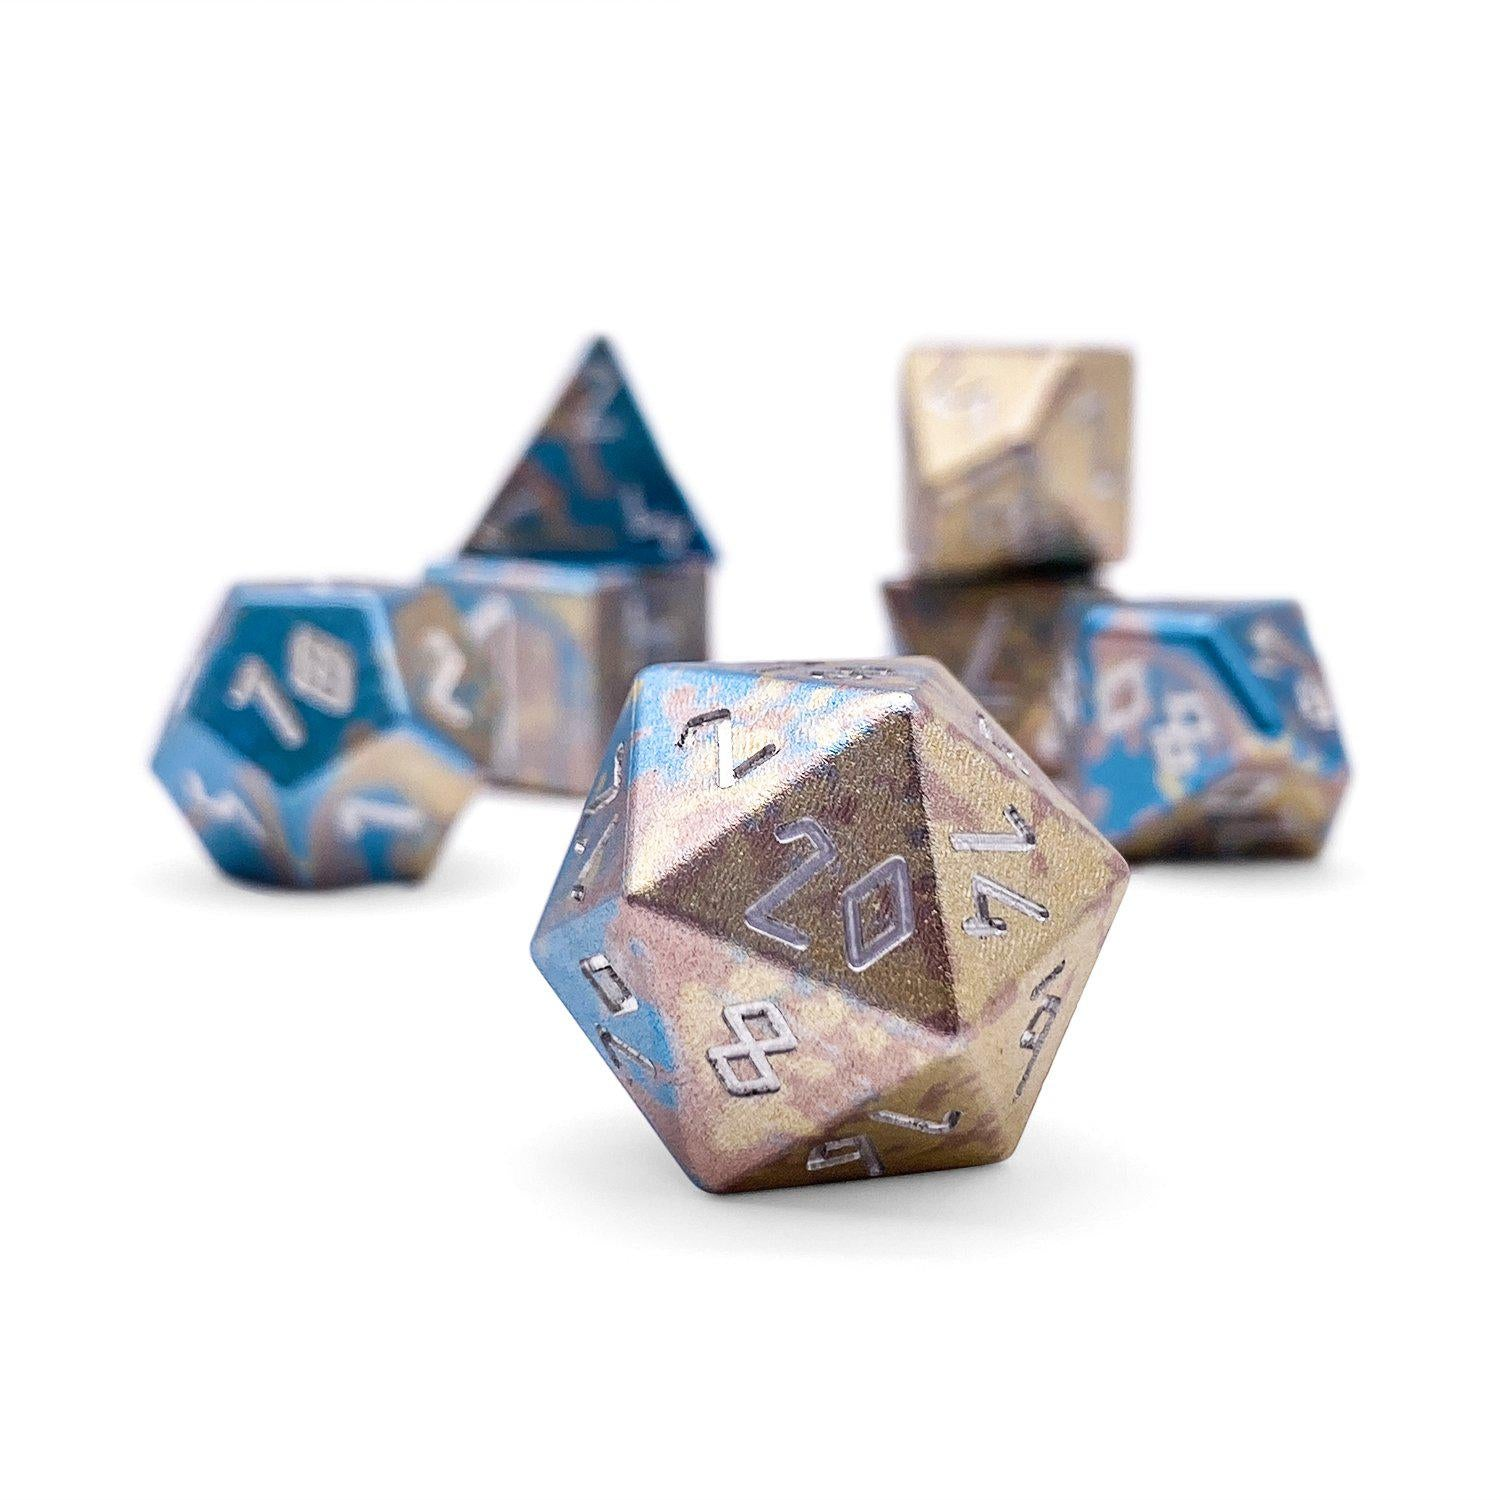 Cotton Candy - Wondrous Dice Set of 7 RPG Dice by Norse Foundry Precision Polyhedral Dice Set